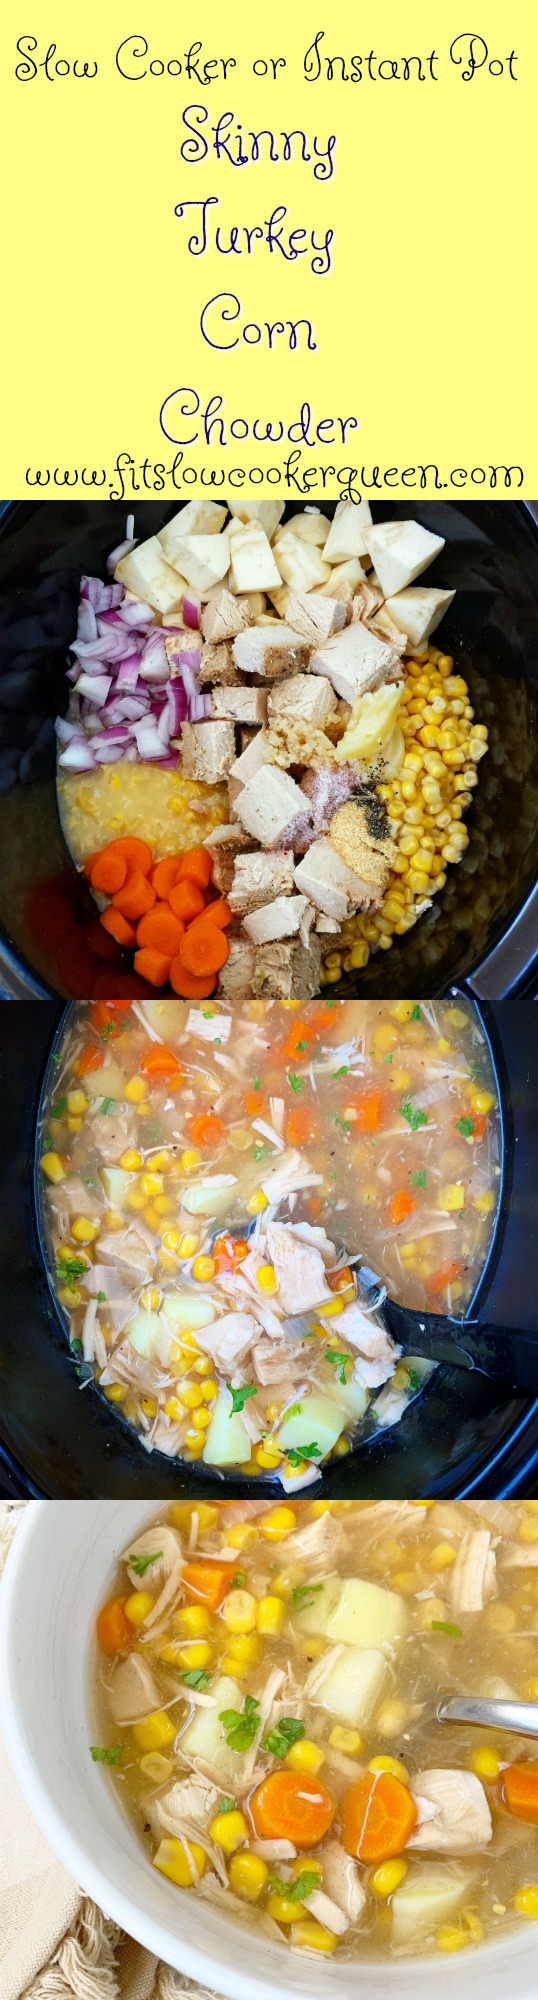 Another pinterest pin for  Slow Cooker_Instant Pot 'Skinny' Turkey Corn Chowder